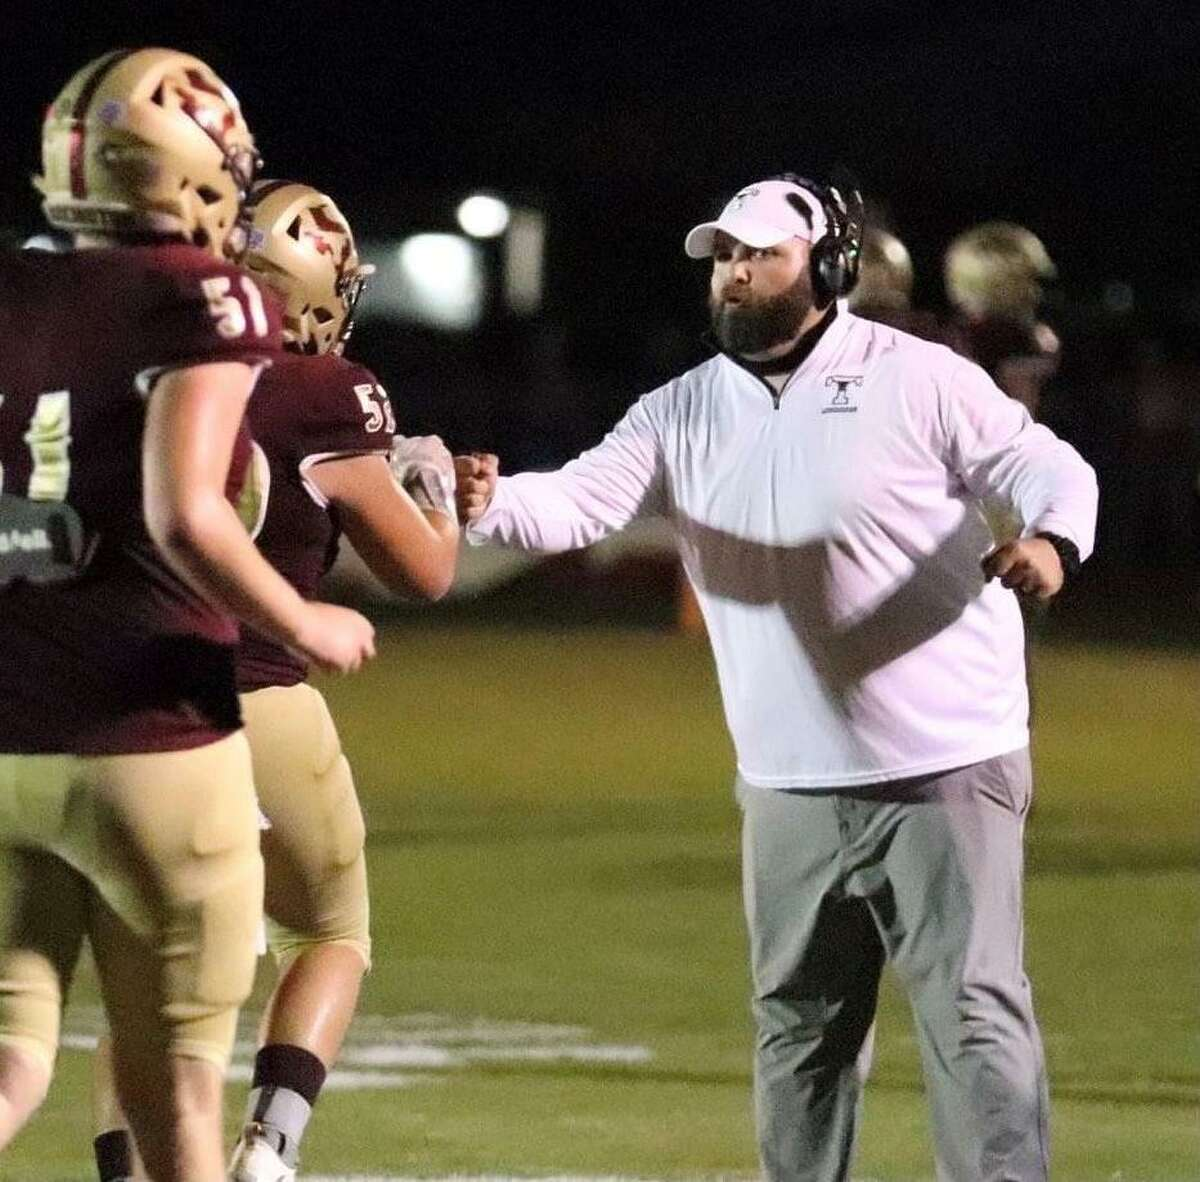 Zach Bass is stepping down as athletic director and head football coach at Tarkington to join Chuck Langston's staff at West Brook.